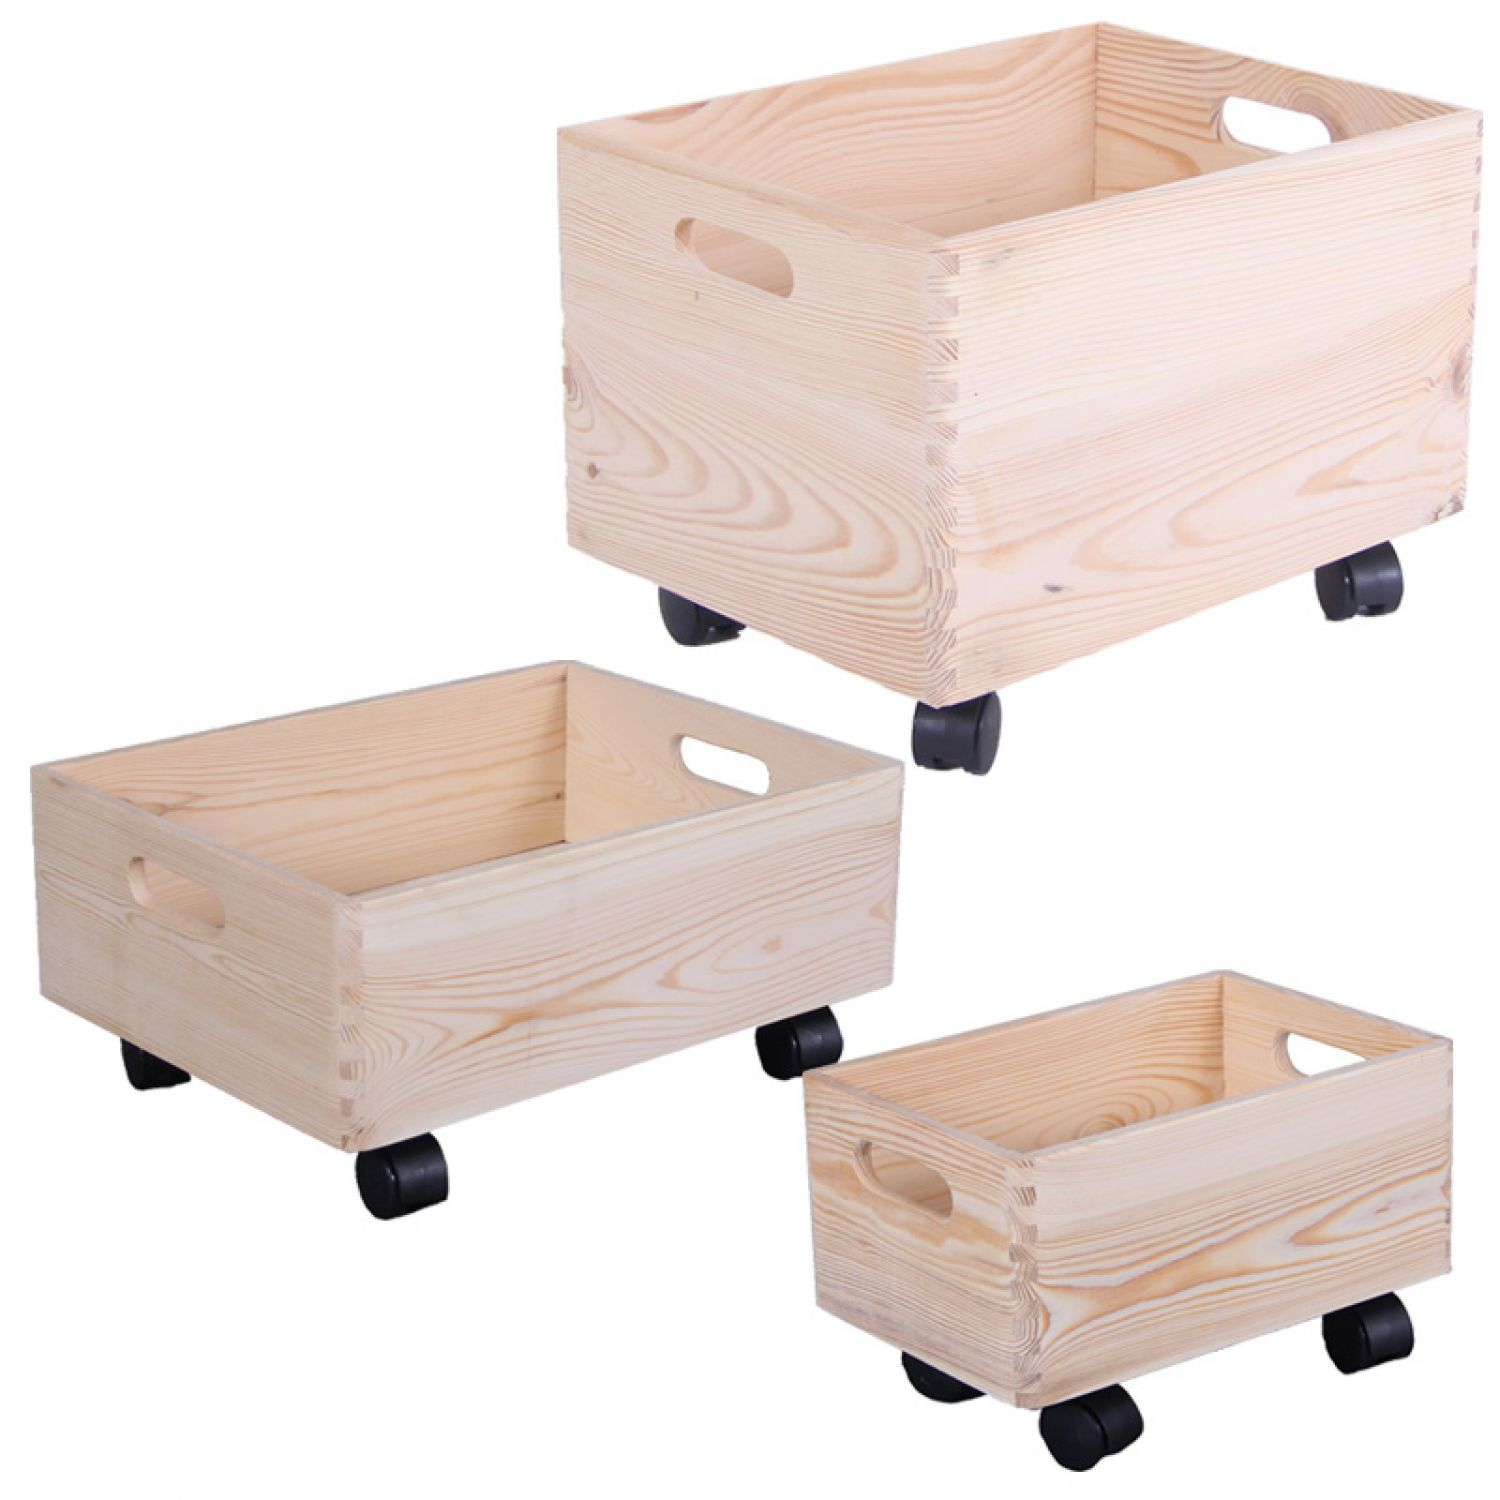 holzkiste auf rollen aufbewahrungsbox holz kinderzimmer holzkasten rollbox box ebay. Black Bedroom Furniture Sets. Home Design Ideas